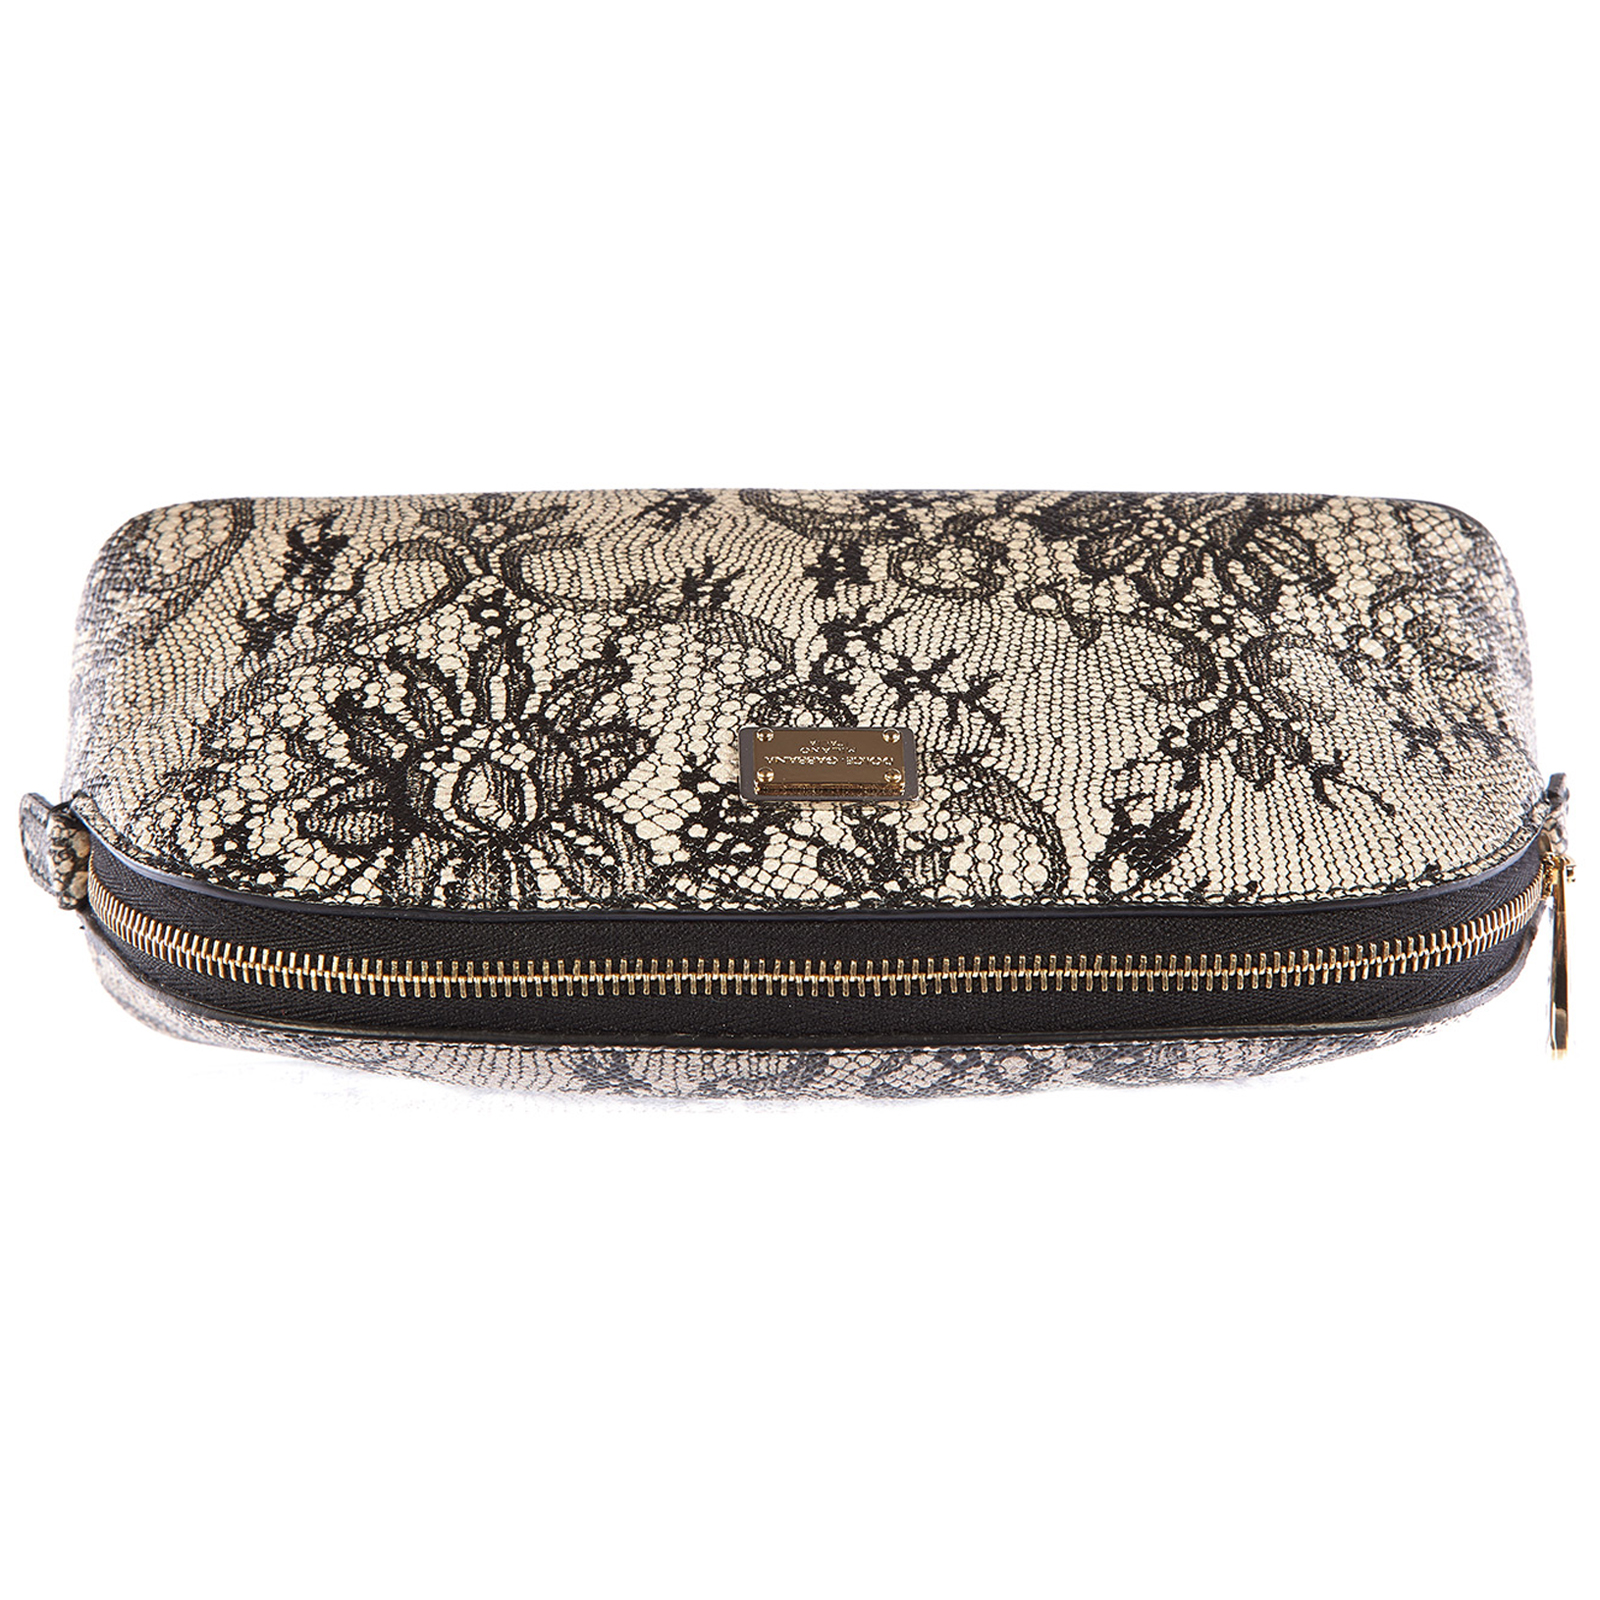 Women's travel makeup beauty case in leather dauphine